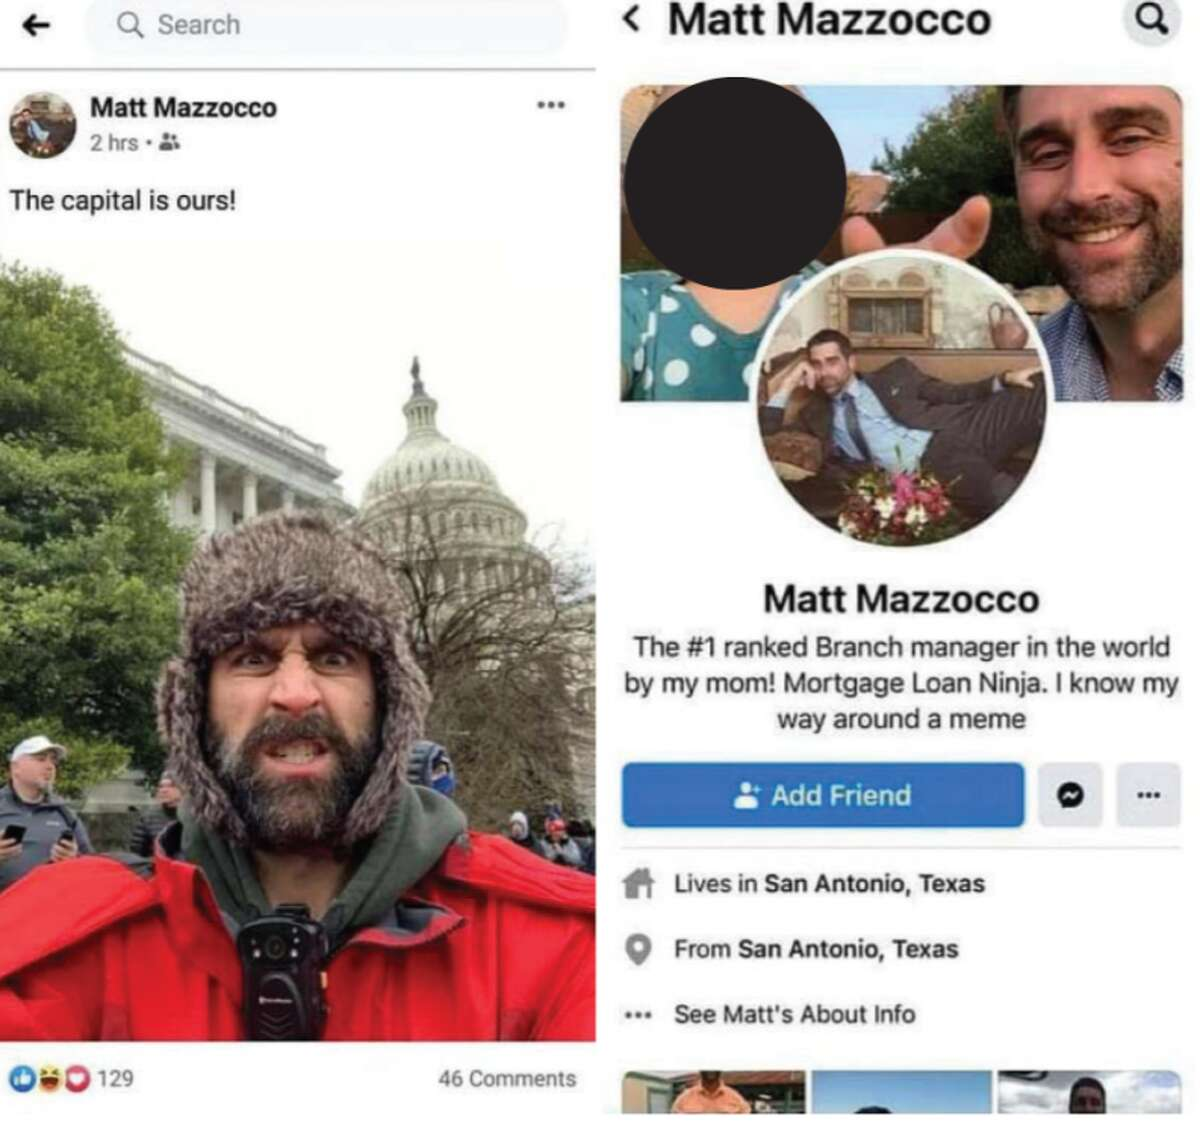 Video of Matthew Mazzocco, a San Antonio resident, appeared in videos of him at the Capitol riot, according to court documents.